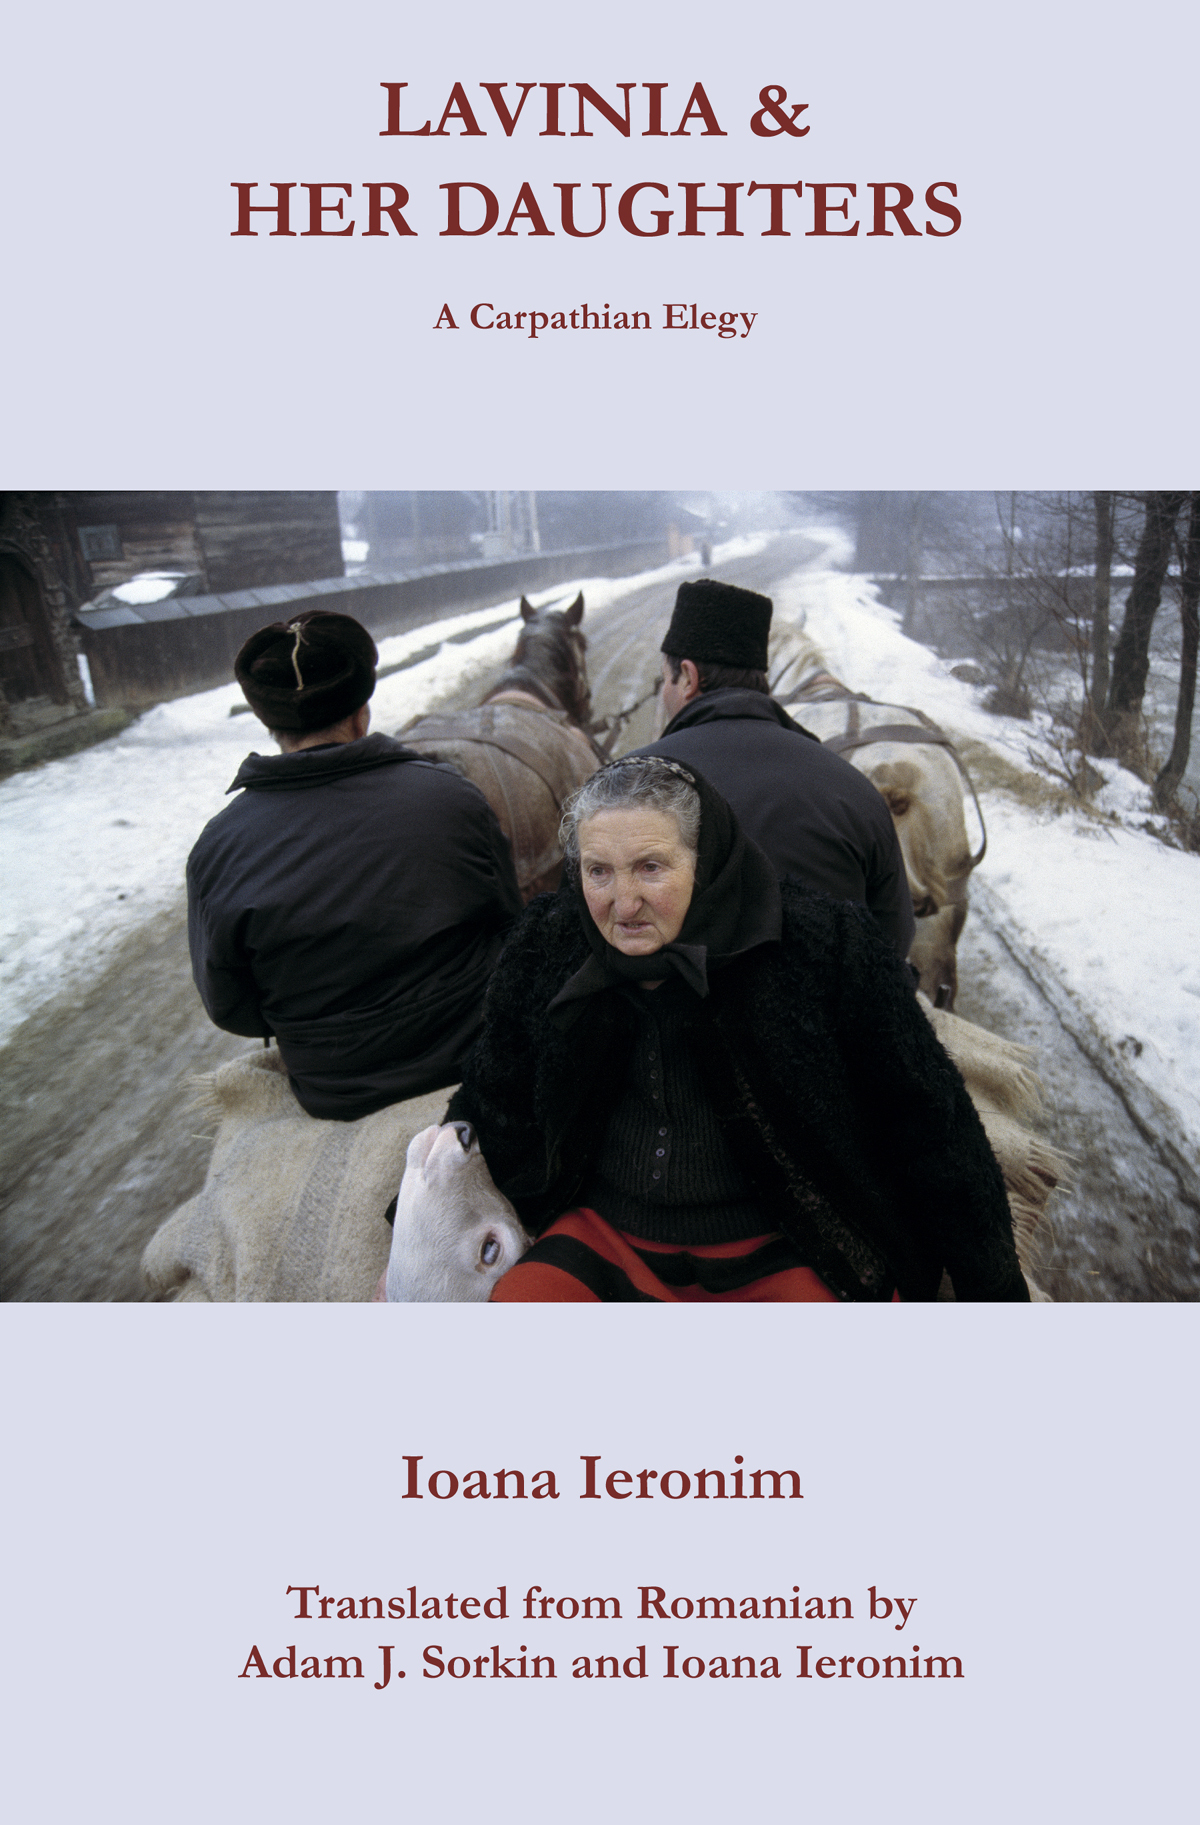 LAVINIA & HER DAUGHTERS: A Carpathian Elegy